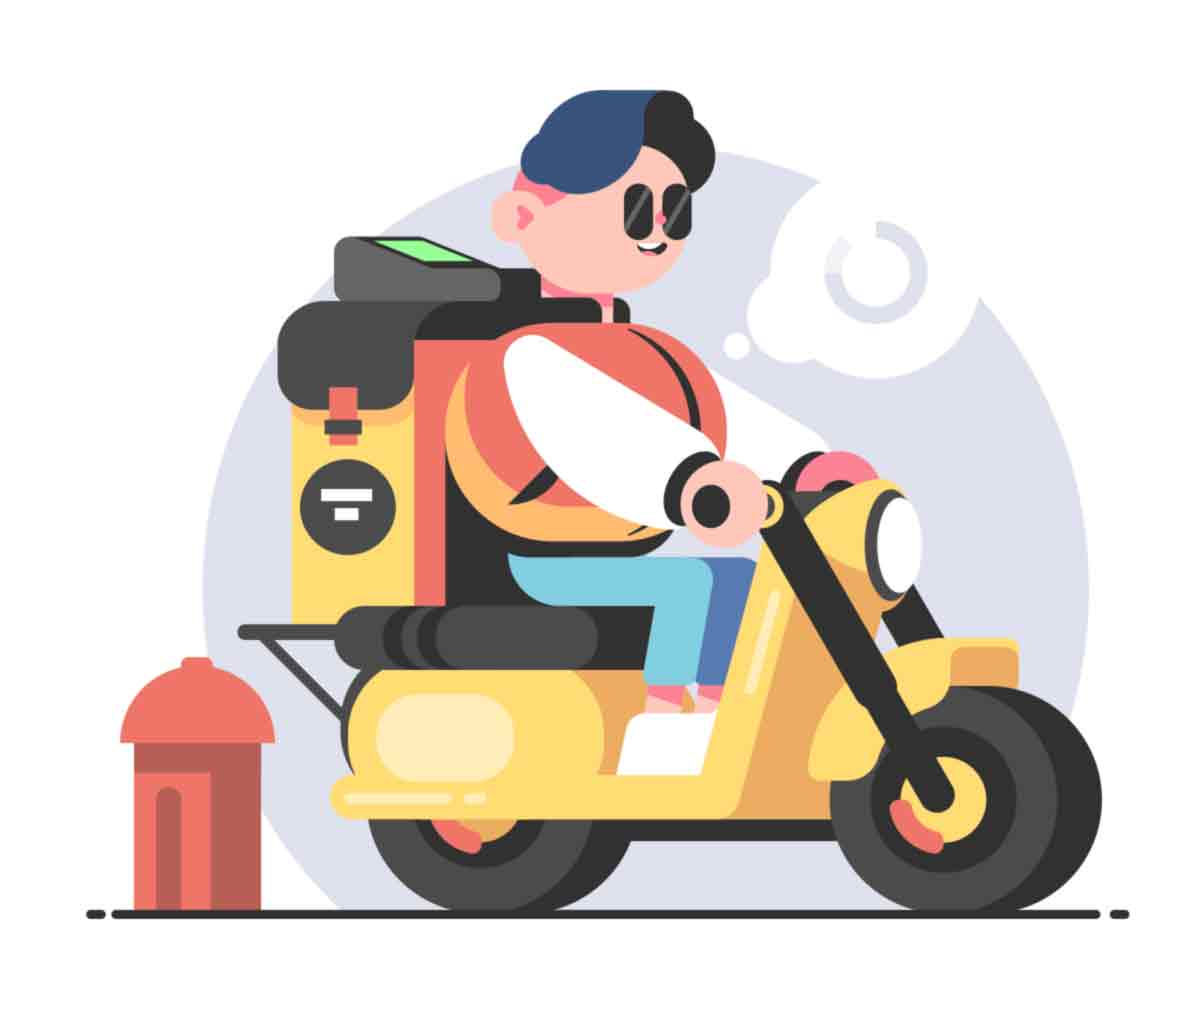 vector illustrations series made in classic flat style with sweet cartoon characters. Available exclusively on kit8.net